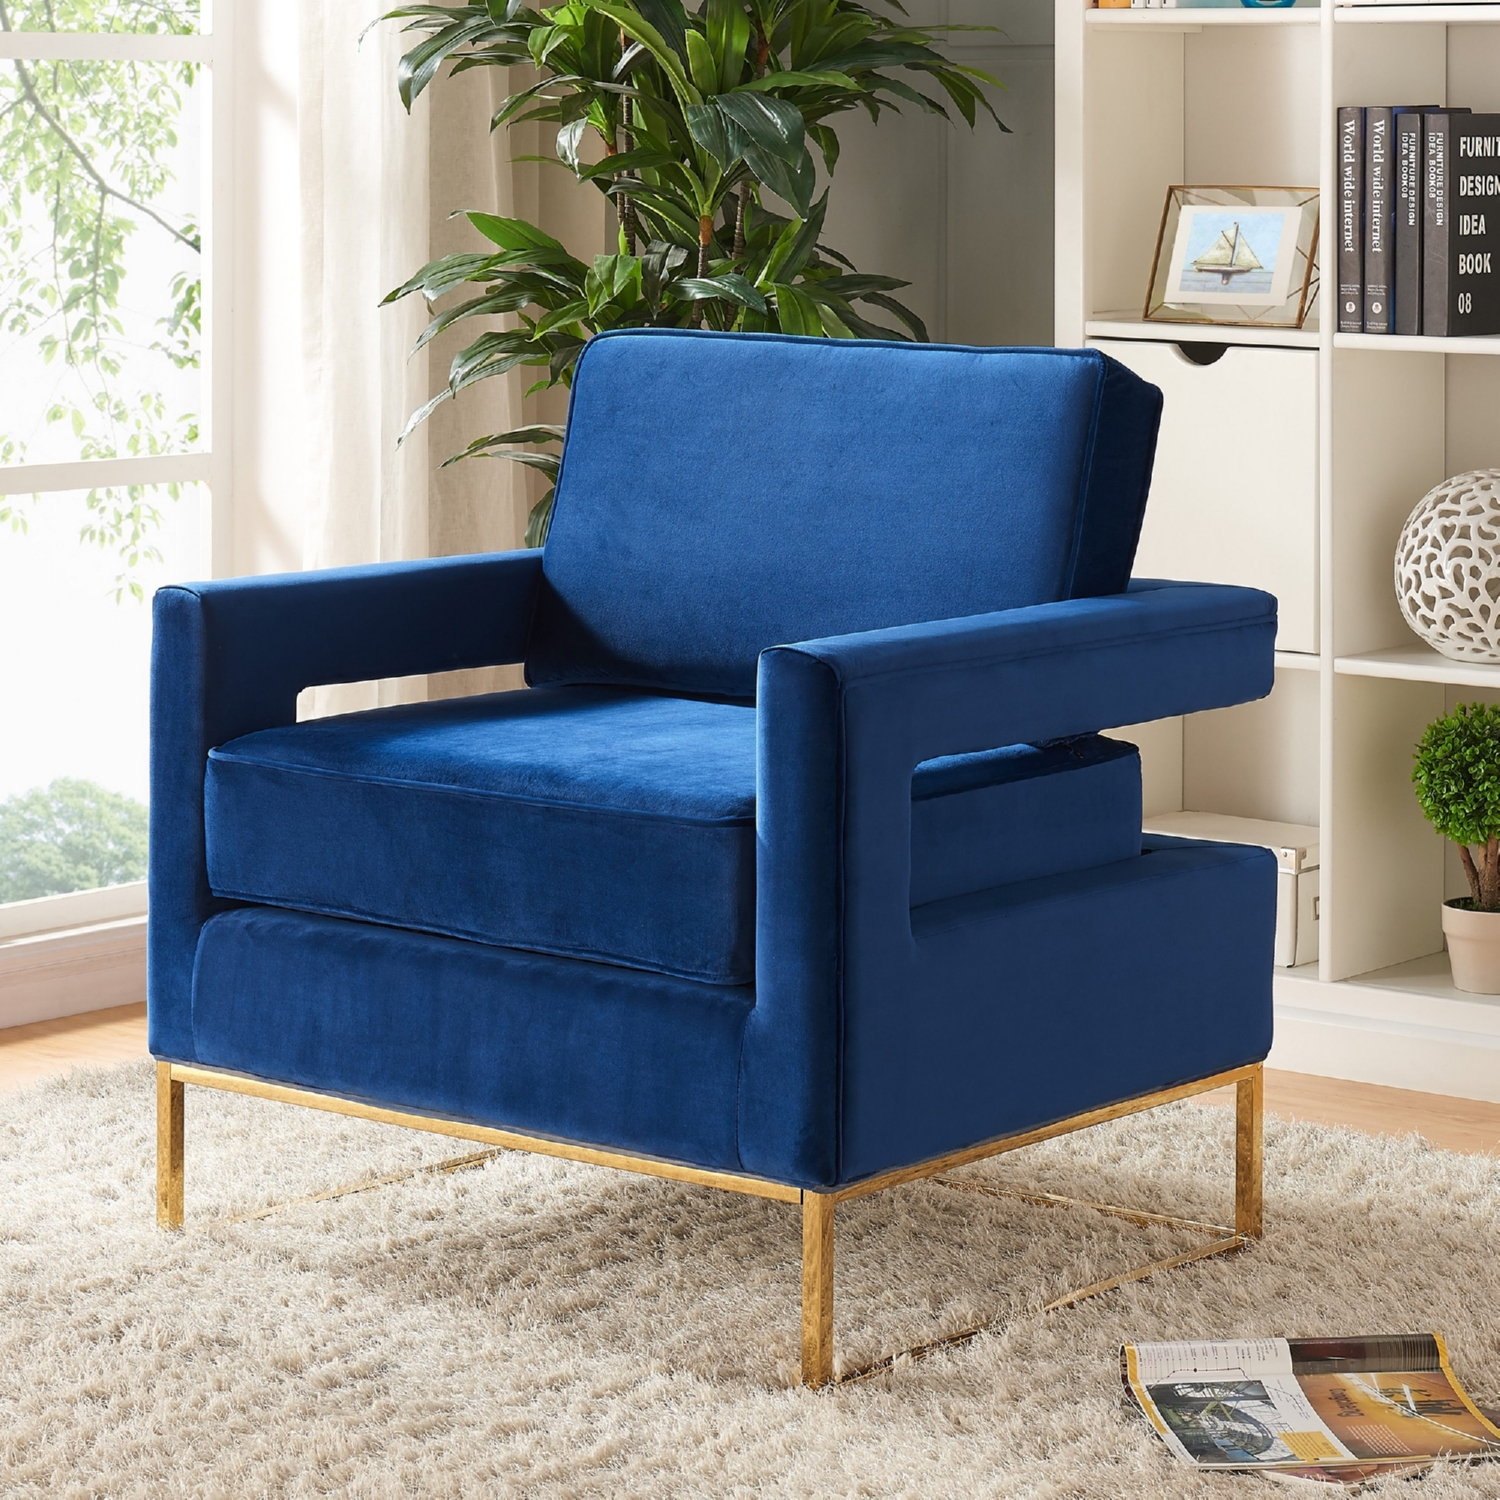 Noah Accent Chair In Navy Velvet On Gold Stainless Steel Base By Meridian Furniture